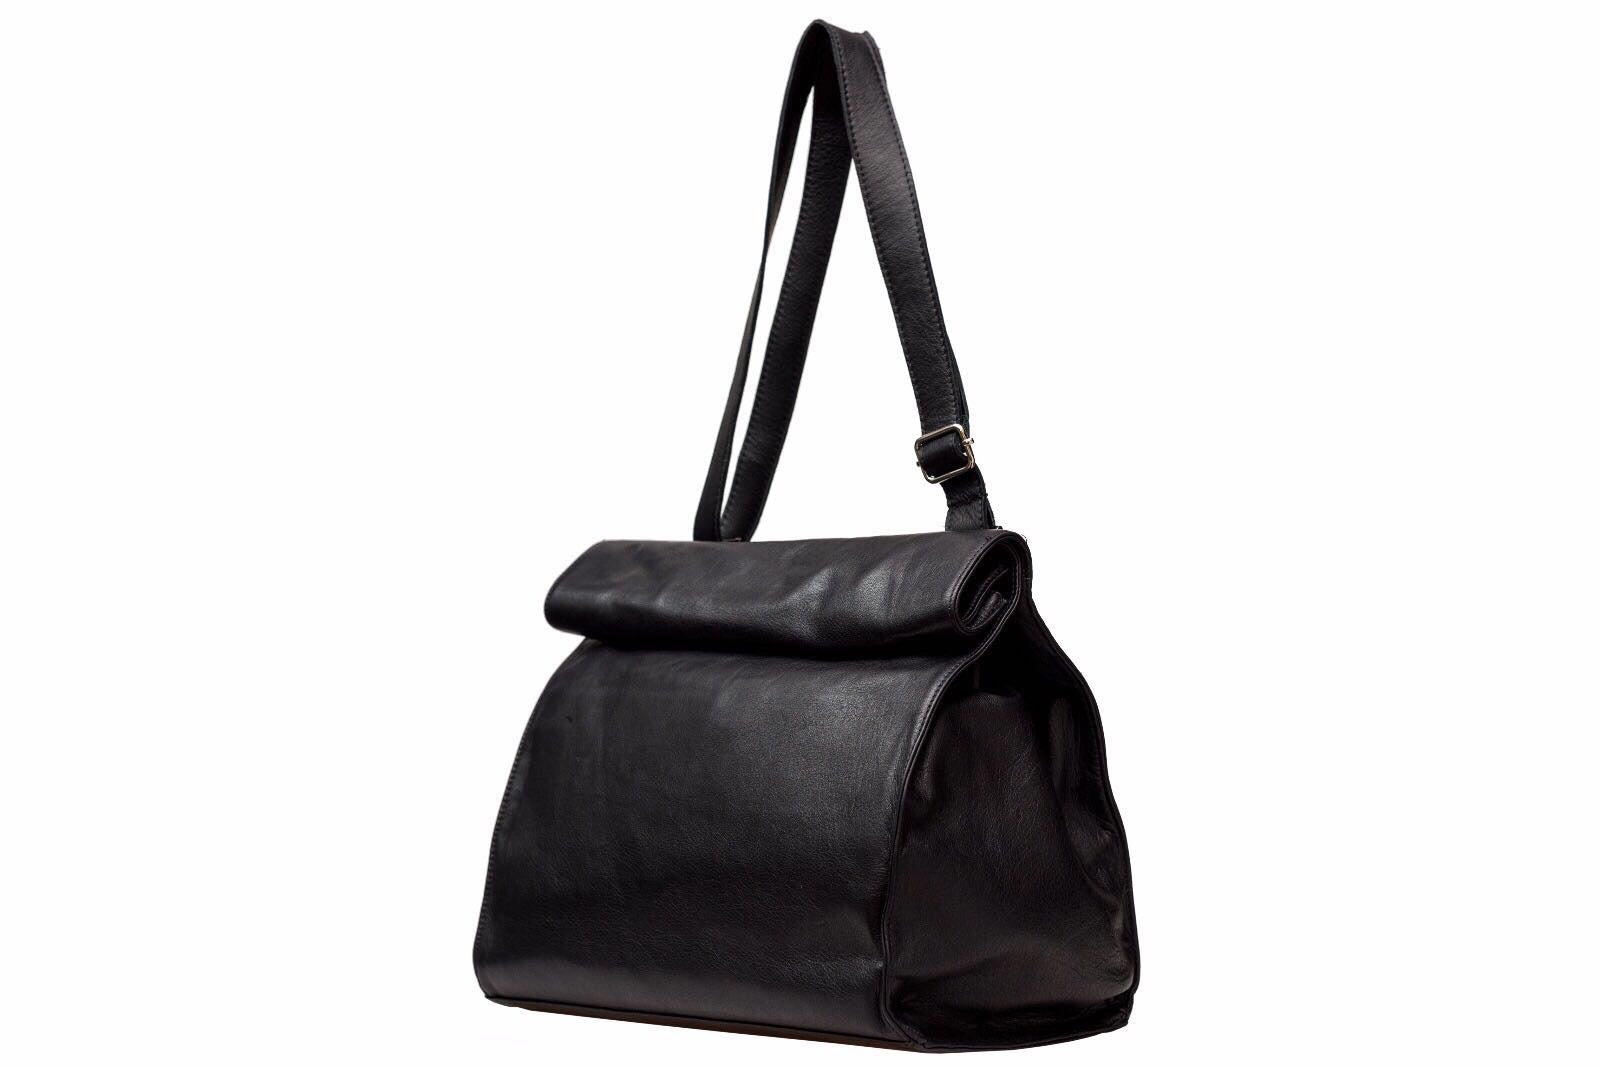 ELEGANT BLACK LEATHER SHOULDER BAG - Avi Algrisi